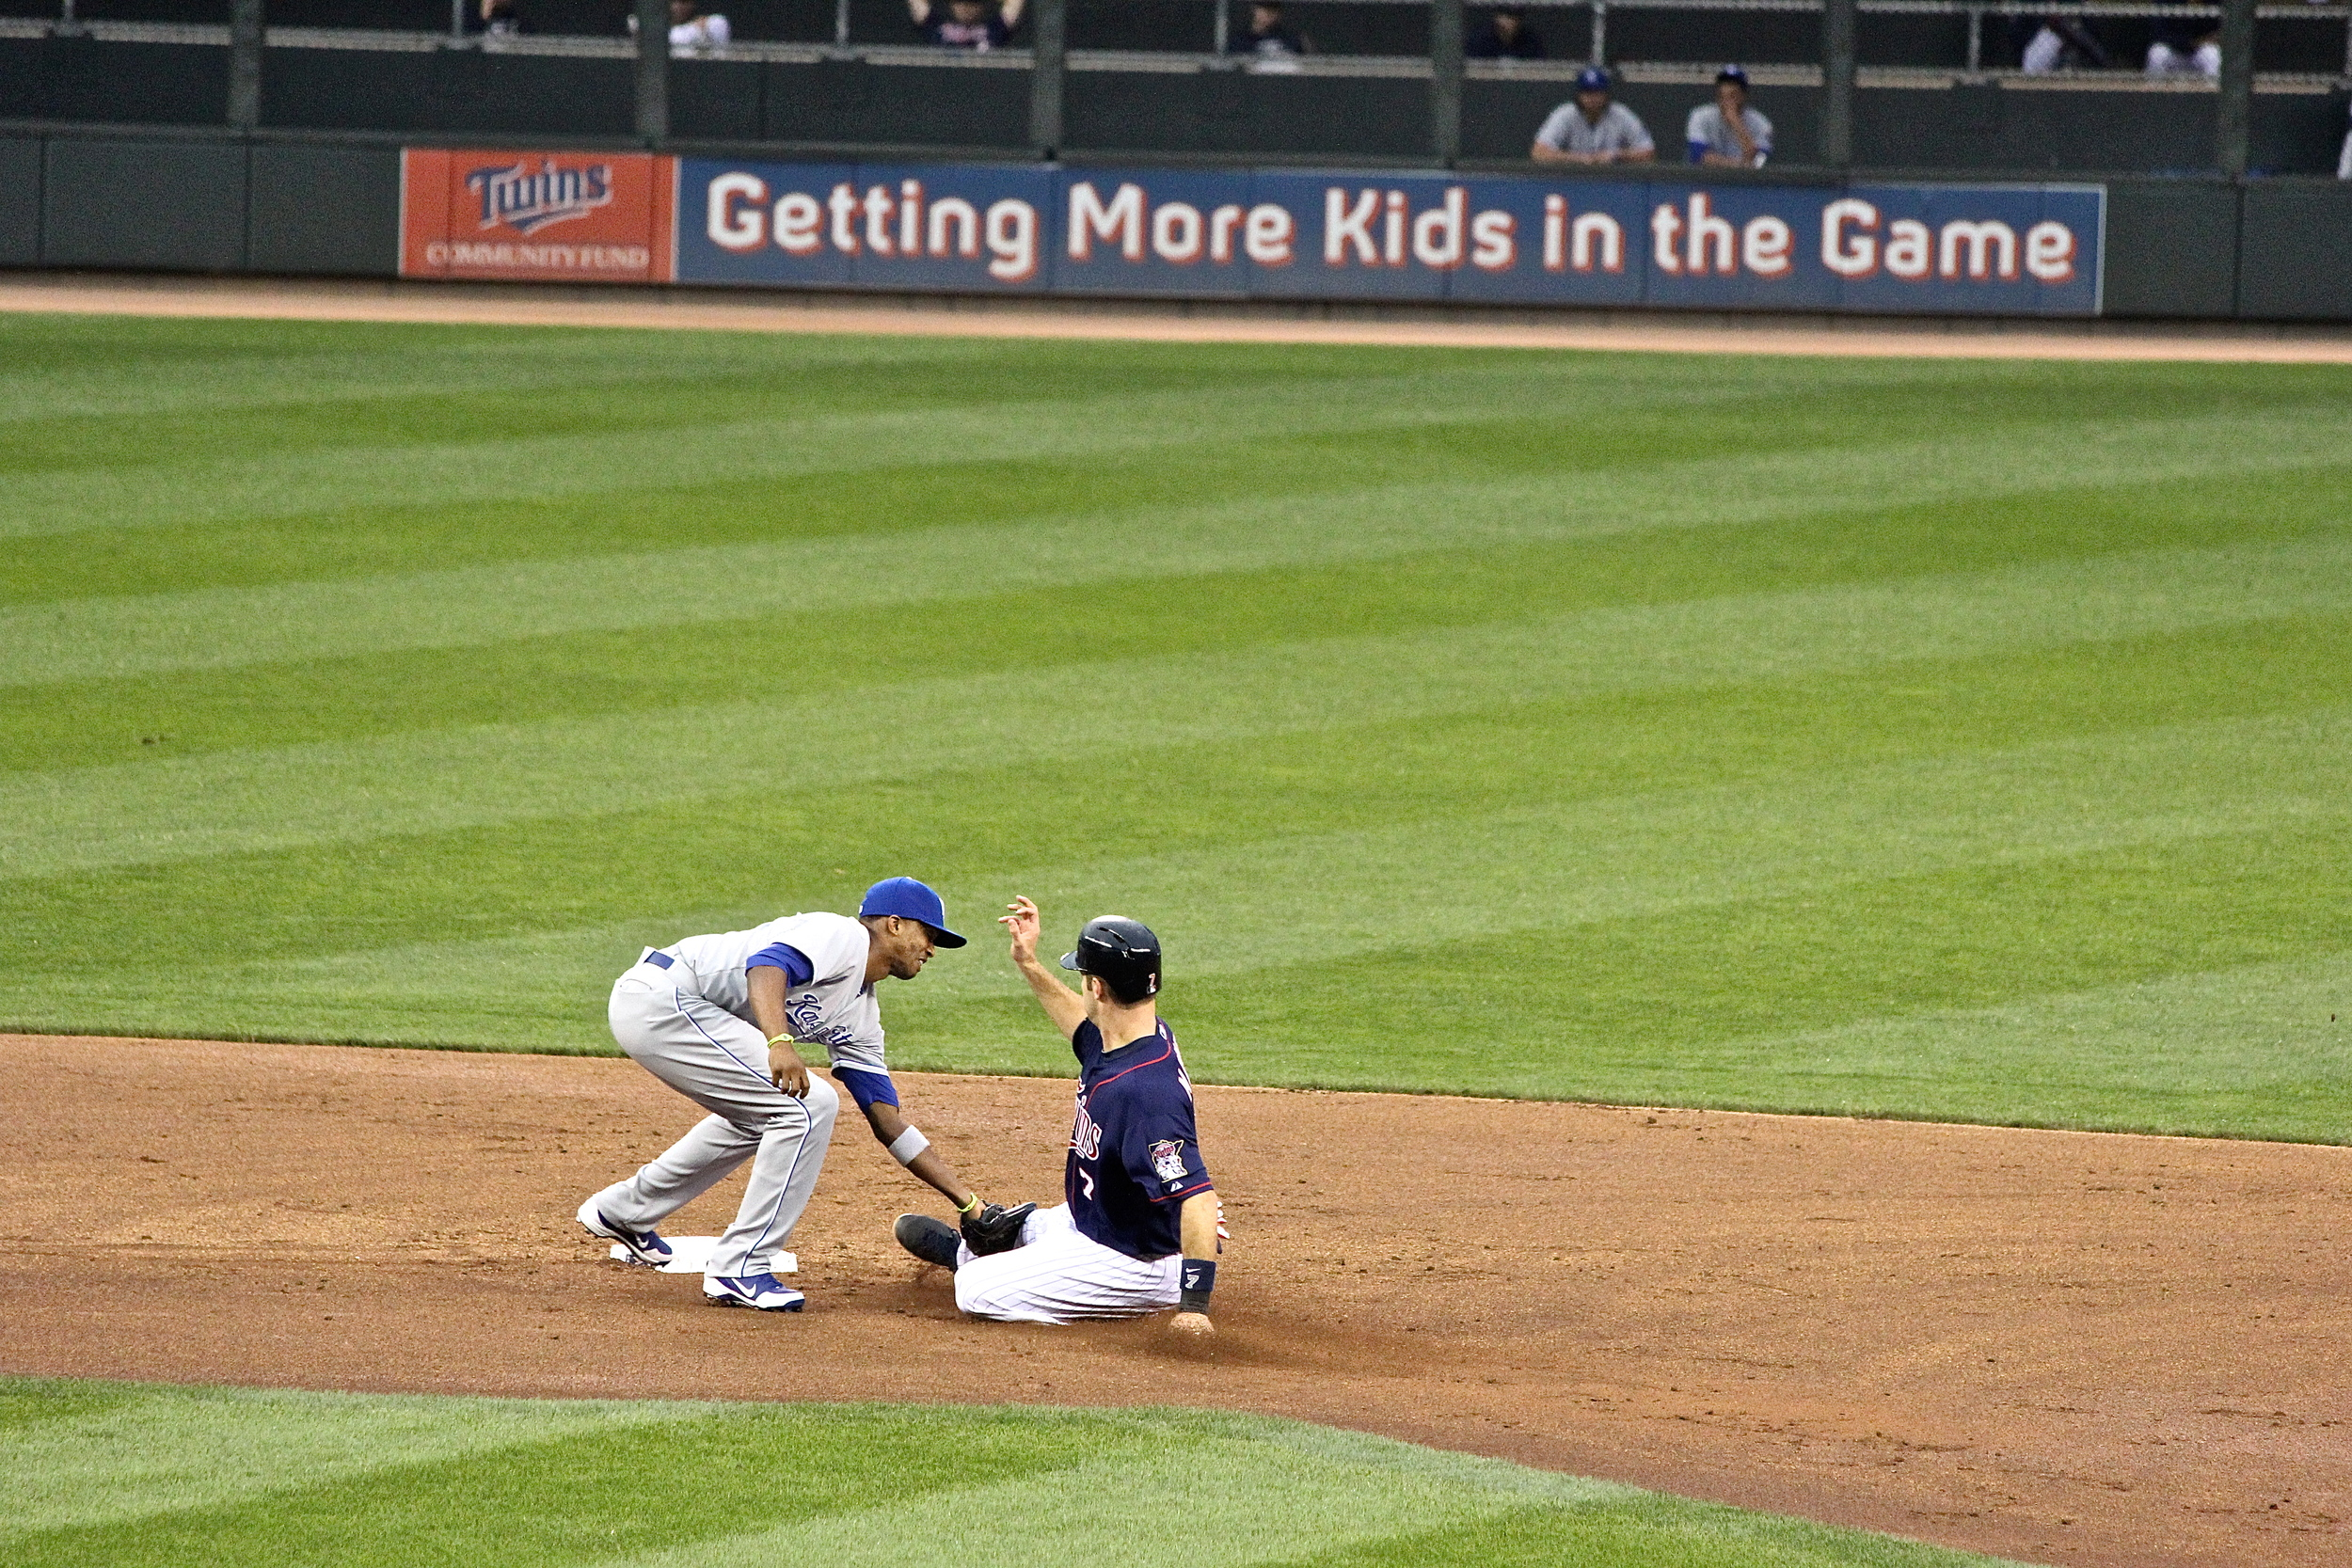 Joe Mauer out at second